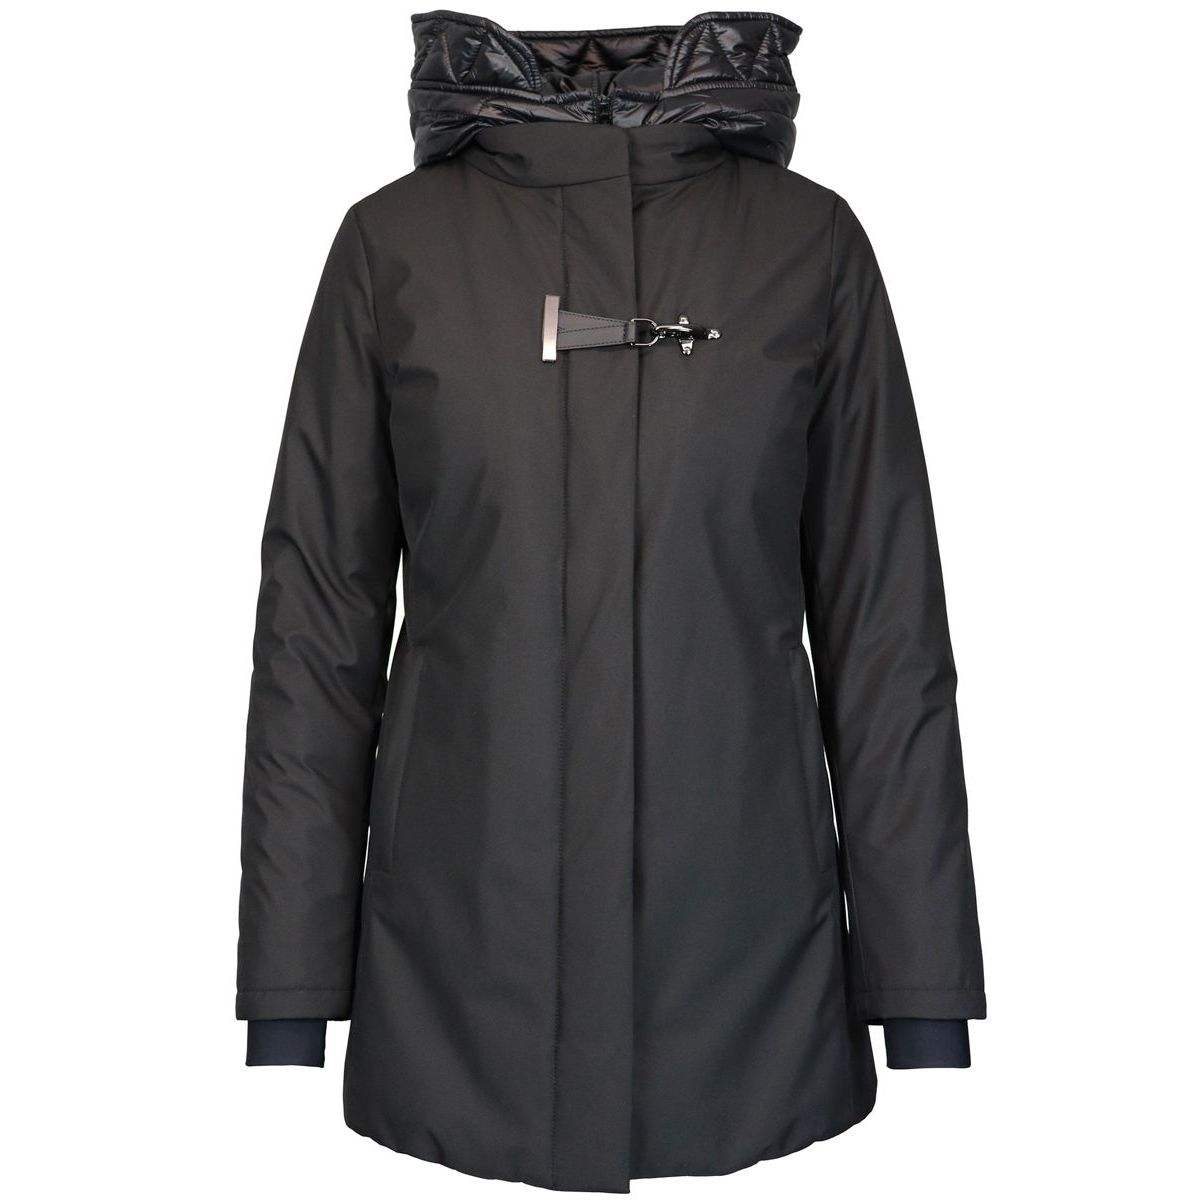 HEROES DOUBLE FRONT parka with detachable inserts Black Fay